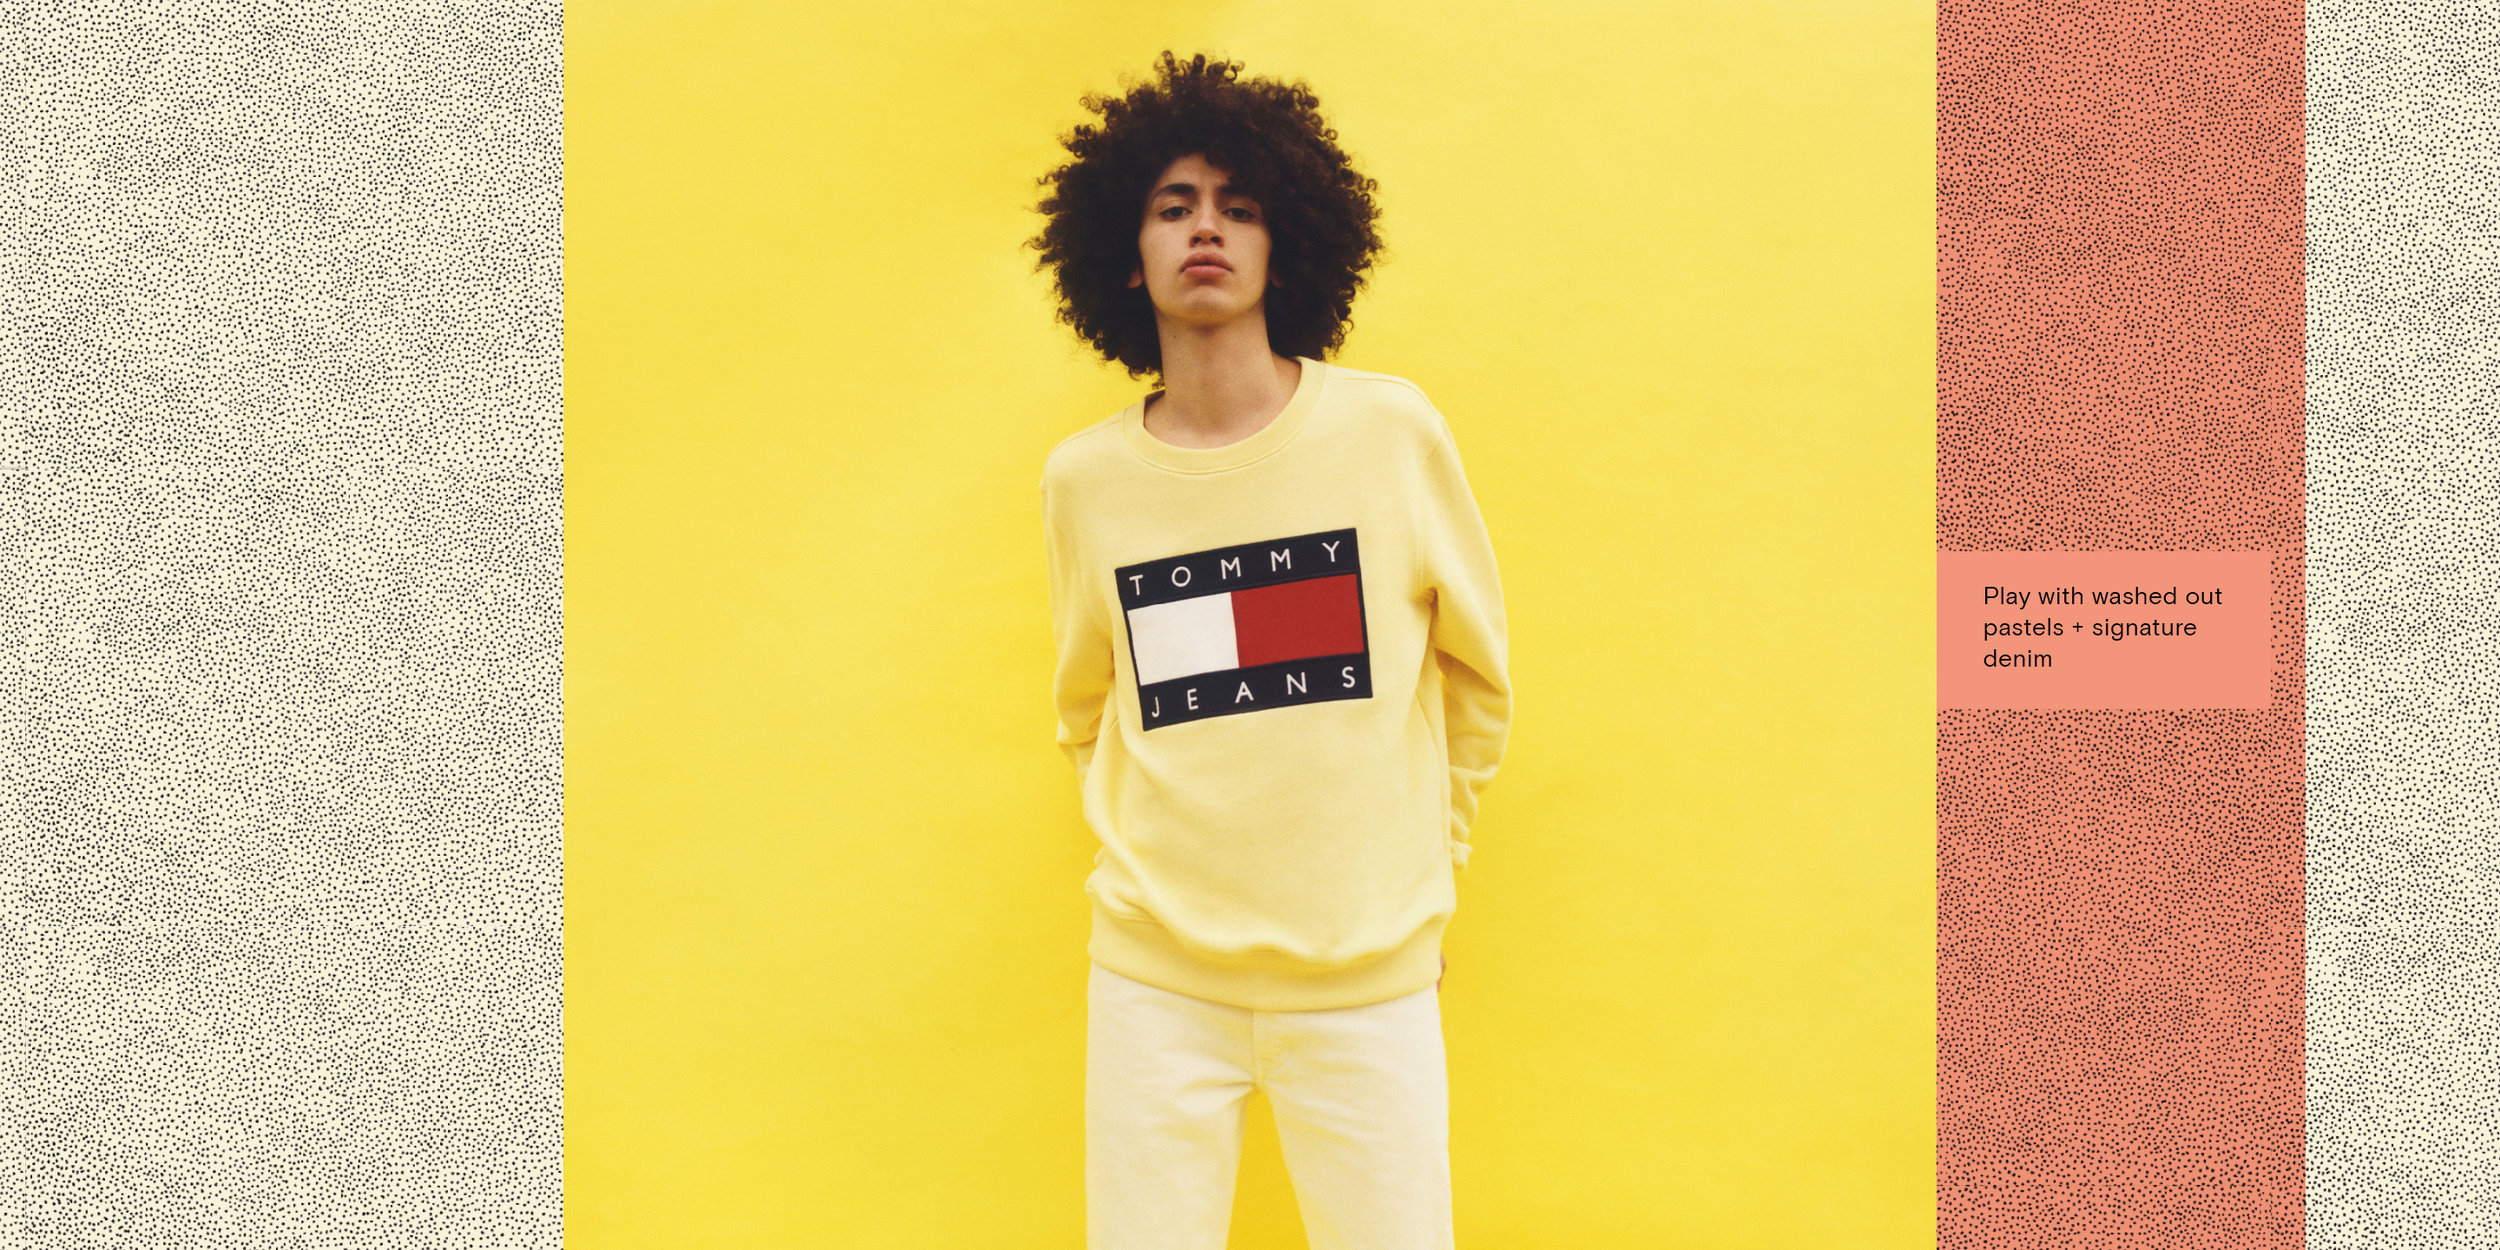 Tommy lookbook4.jpg